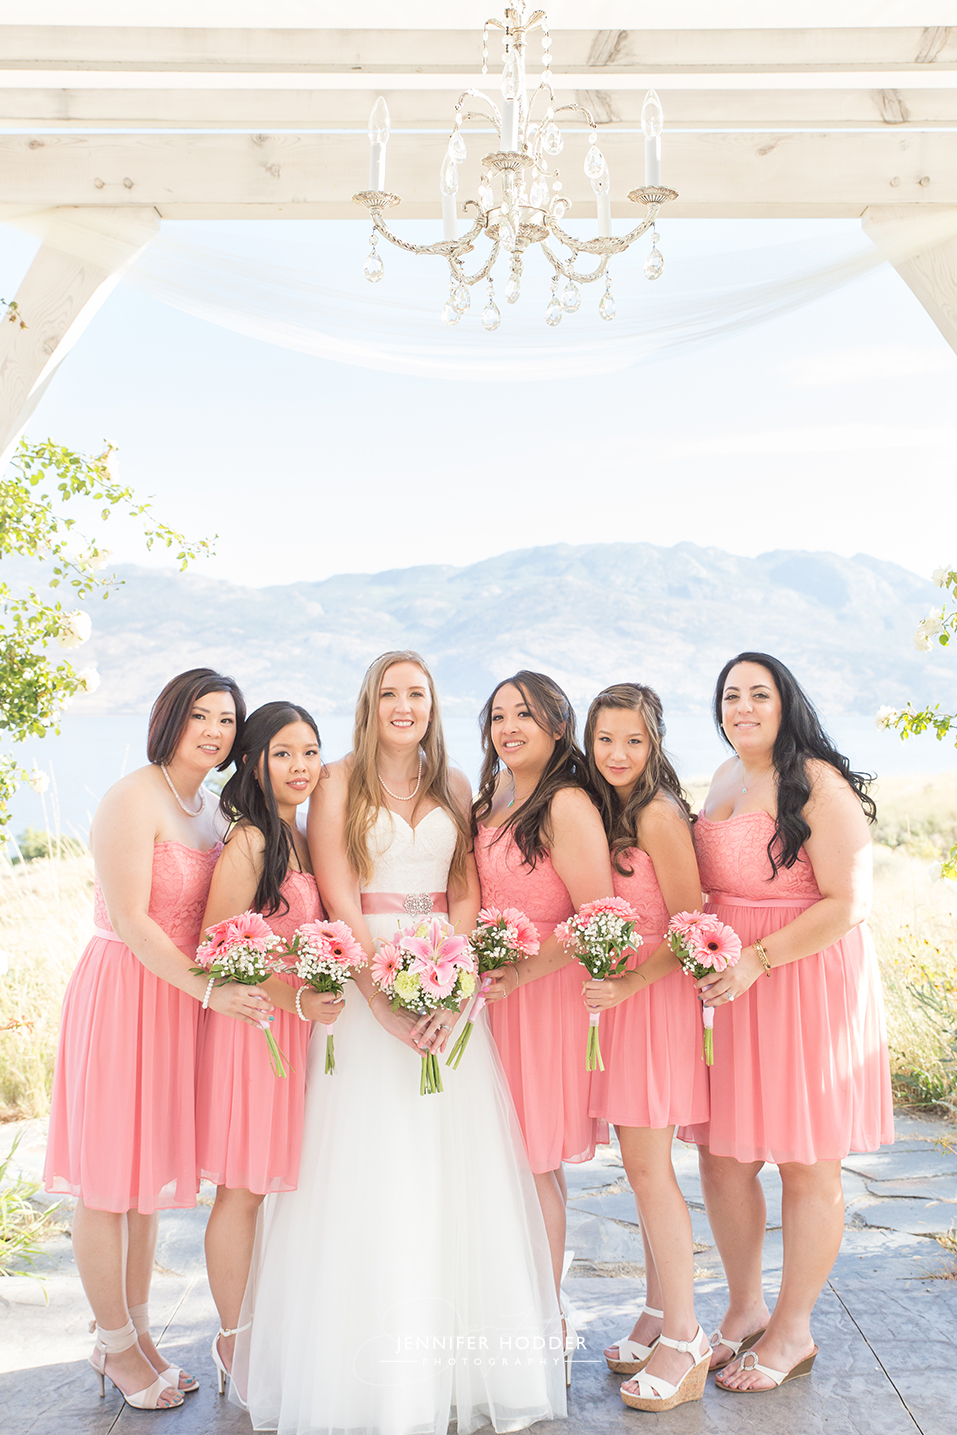 Sanctuary Gardens Okanagan wedding